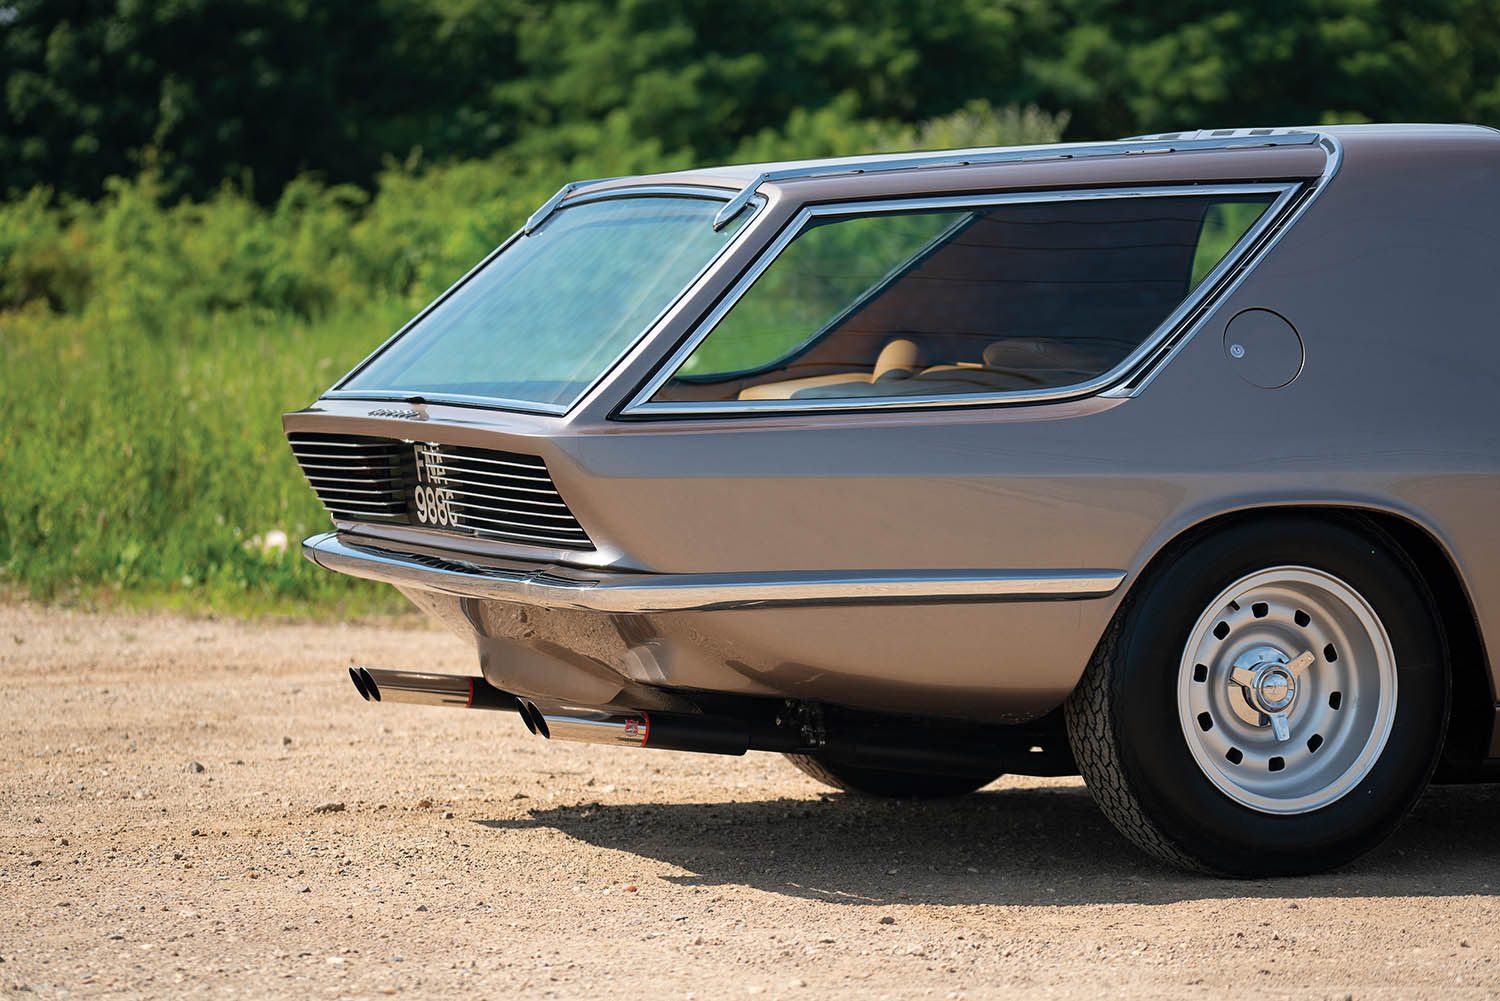 1965-Ferrari-330-GT-2-2-Shooting-Brake-by-Vignale_13.jpg